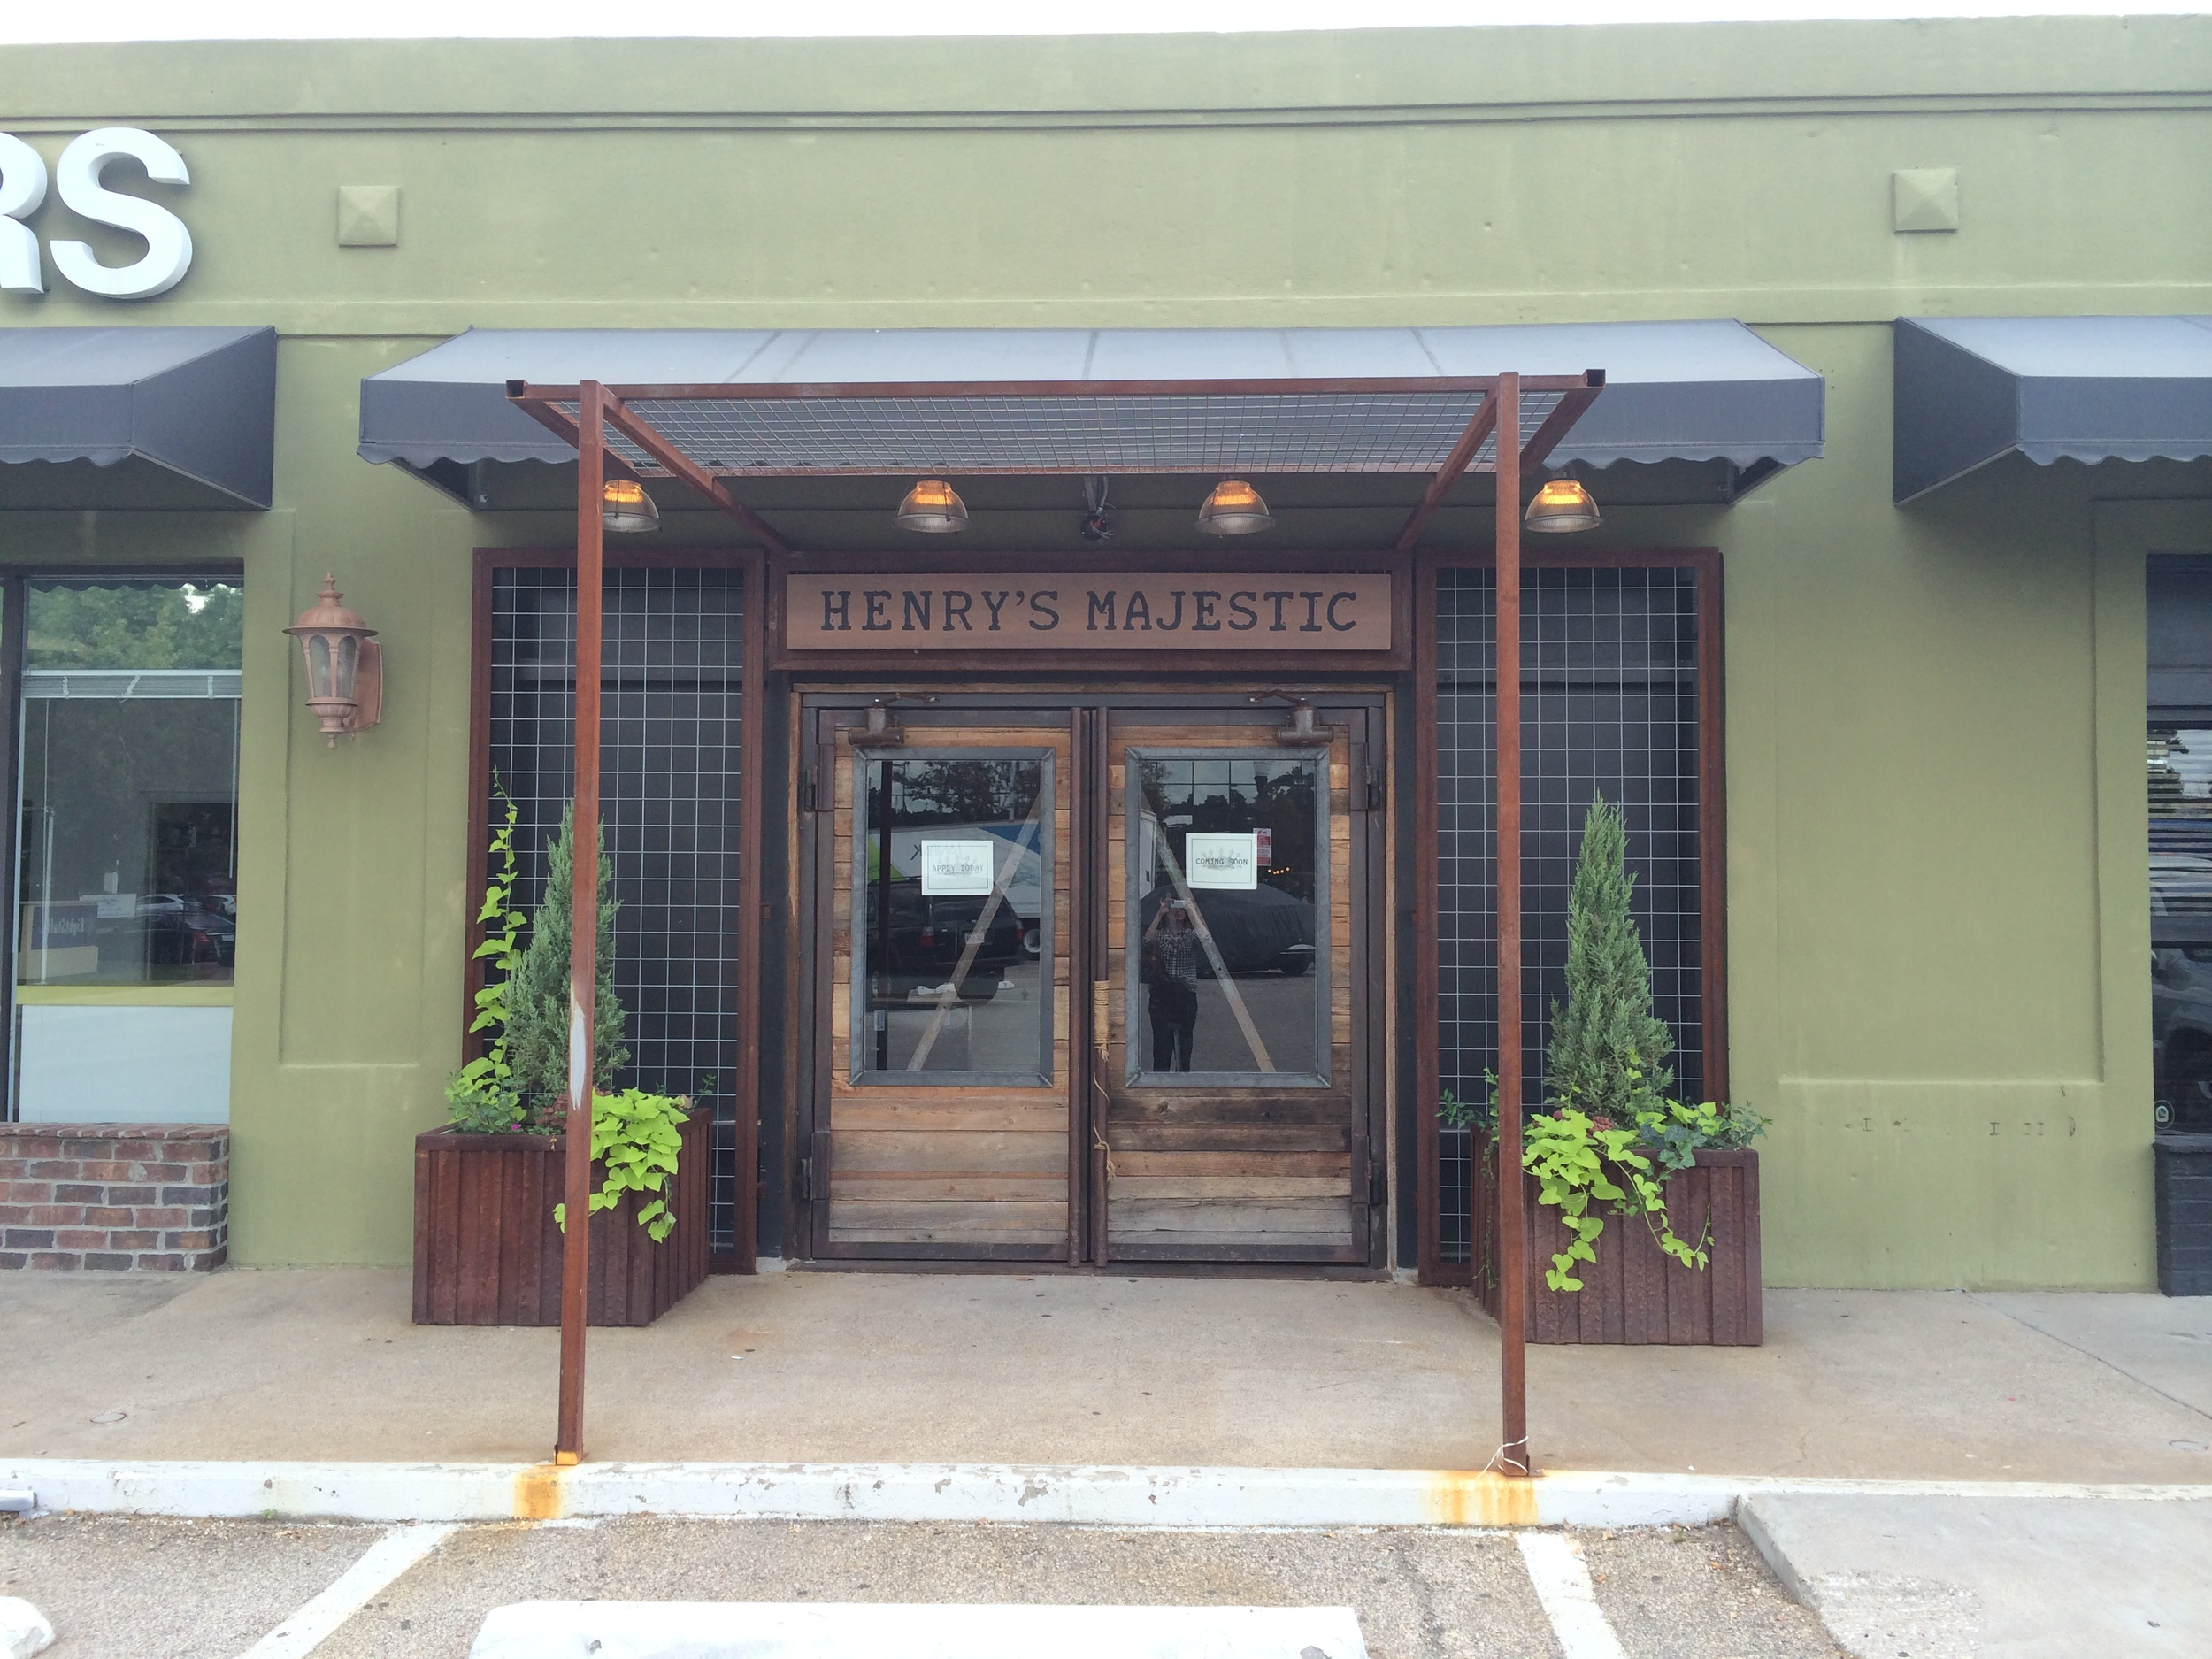 henrys-majestic-entry.jpg